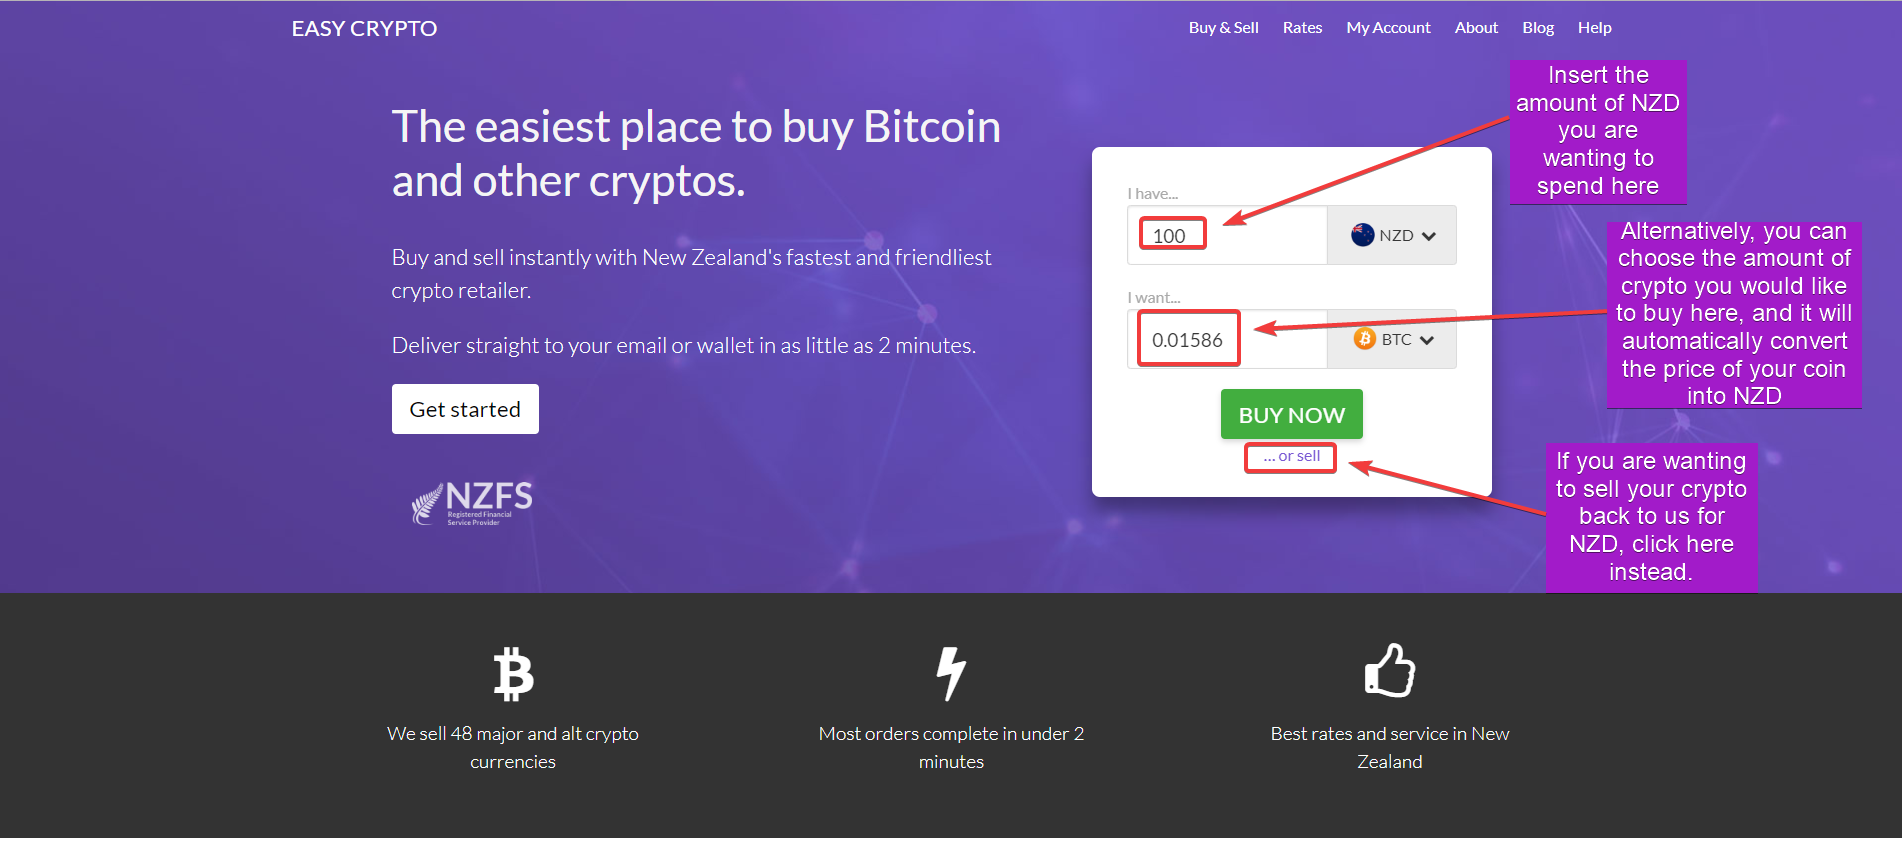 Walk through for main page of buying bitcoin with easycrypto